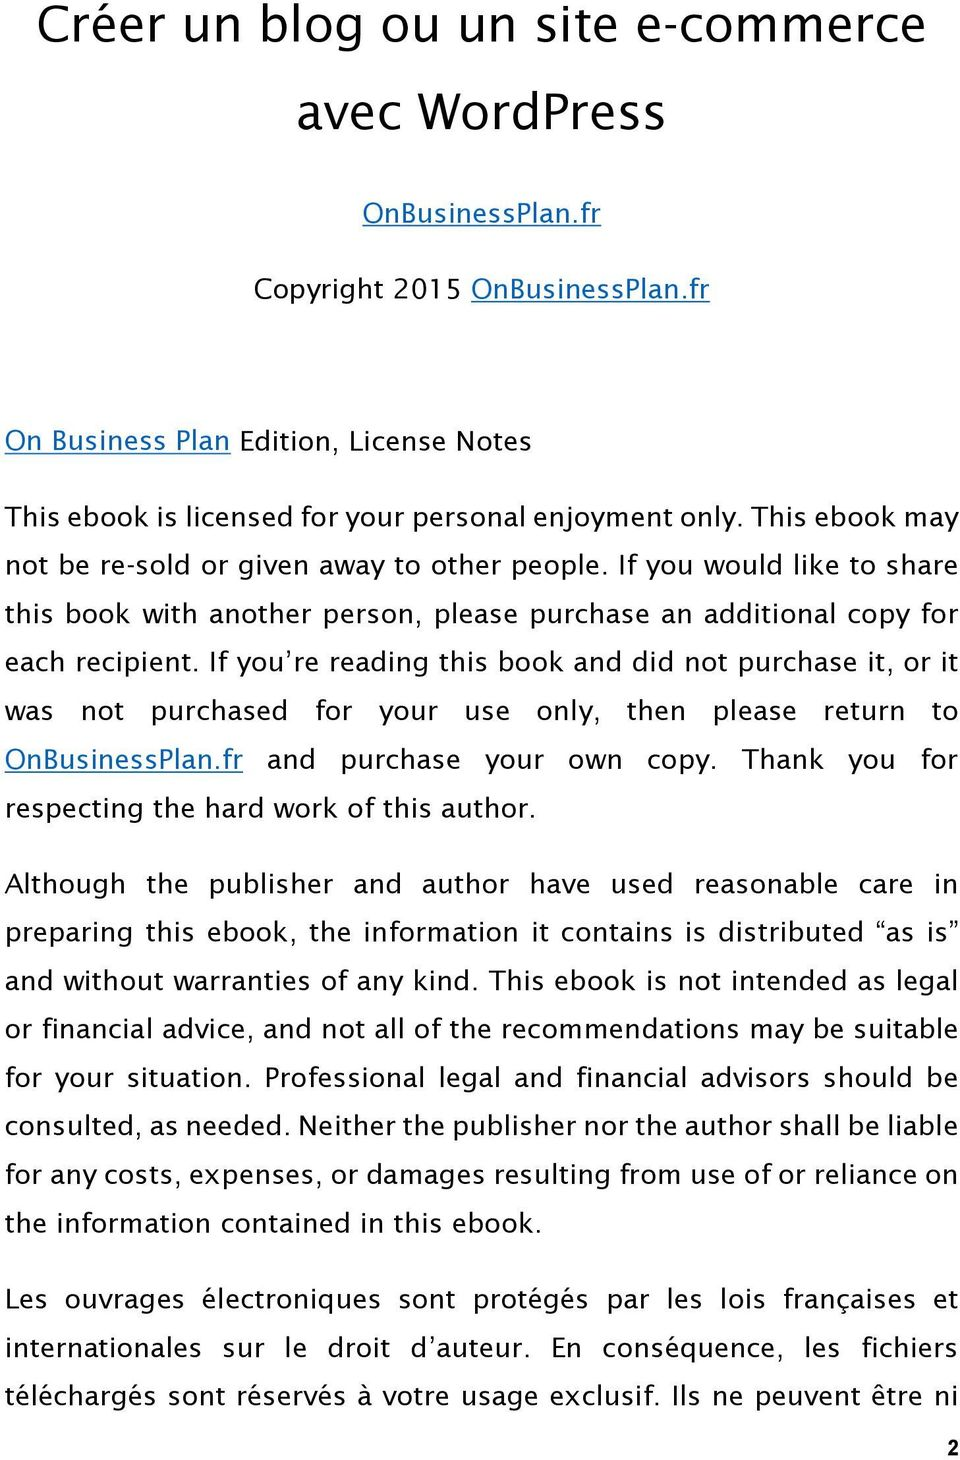 If you re reading this book and did not purchase it, or it was not purchased for your use only, then please return to OnBusinessPlan.fr and purchase your own copy.